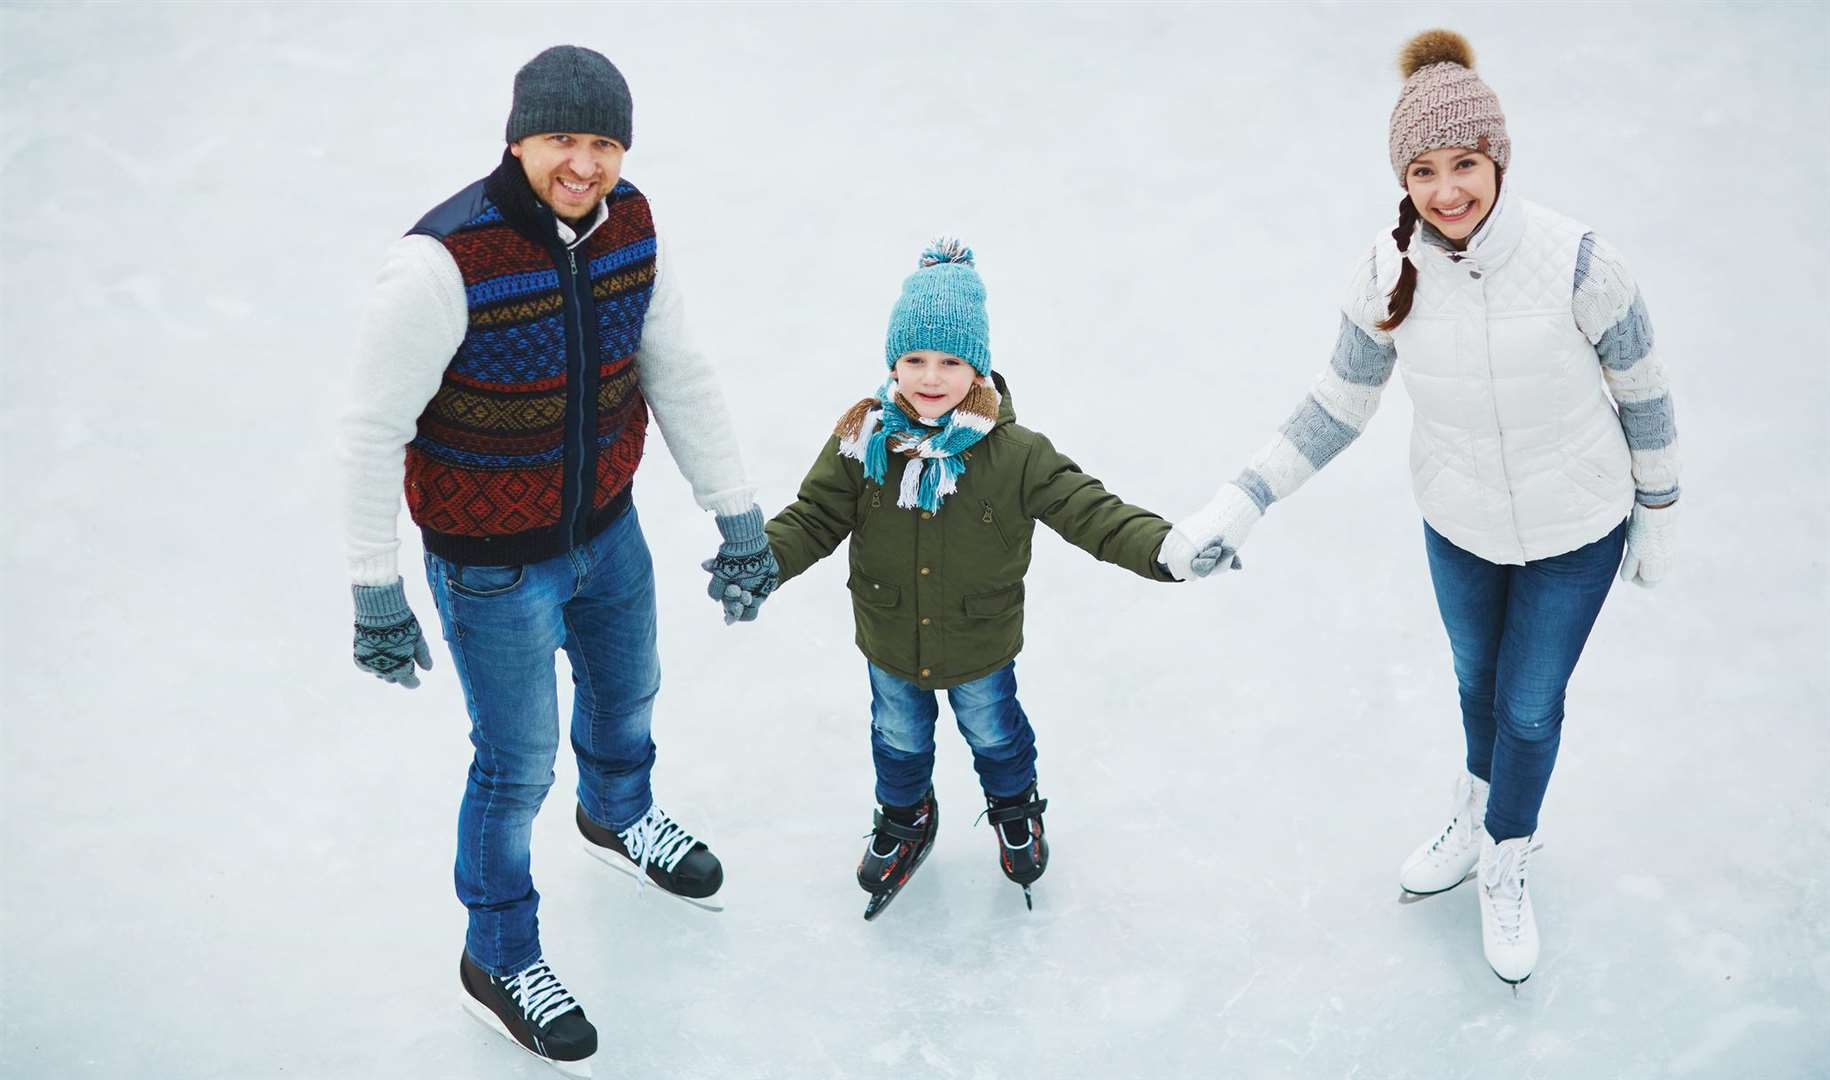 Feel festive and head out on the ice this winter